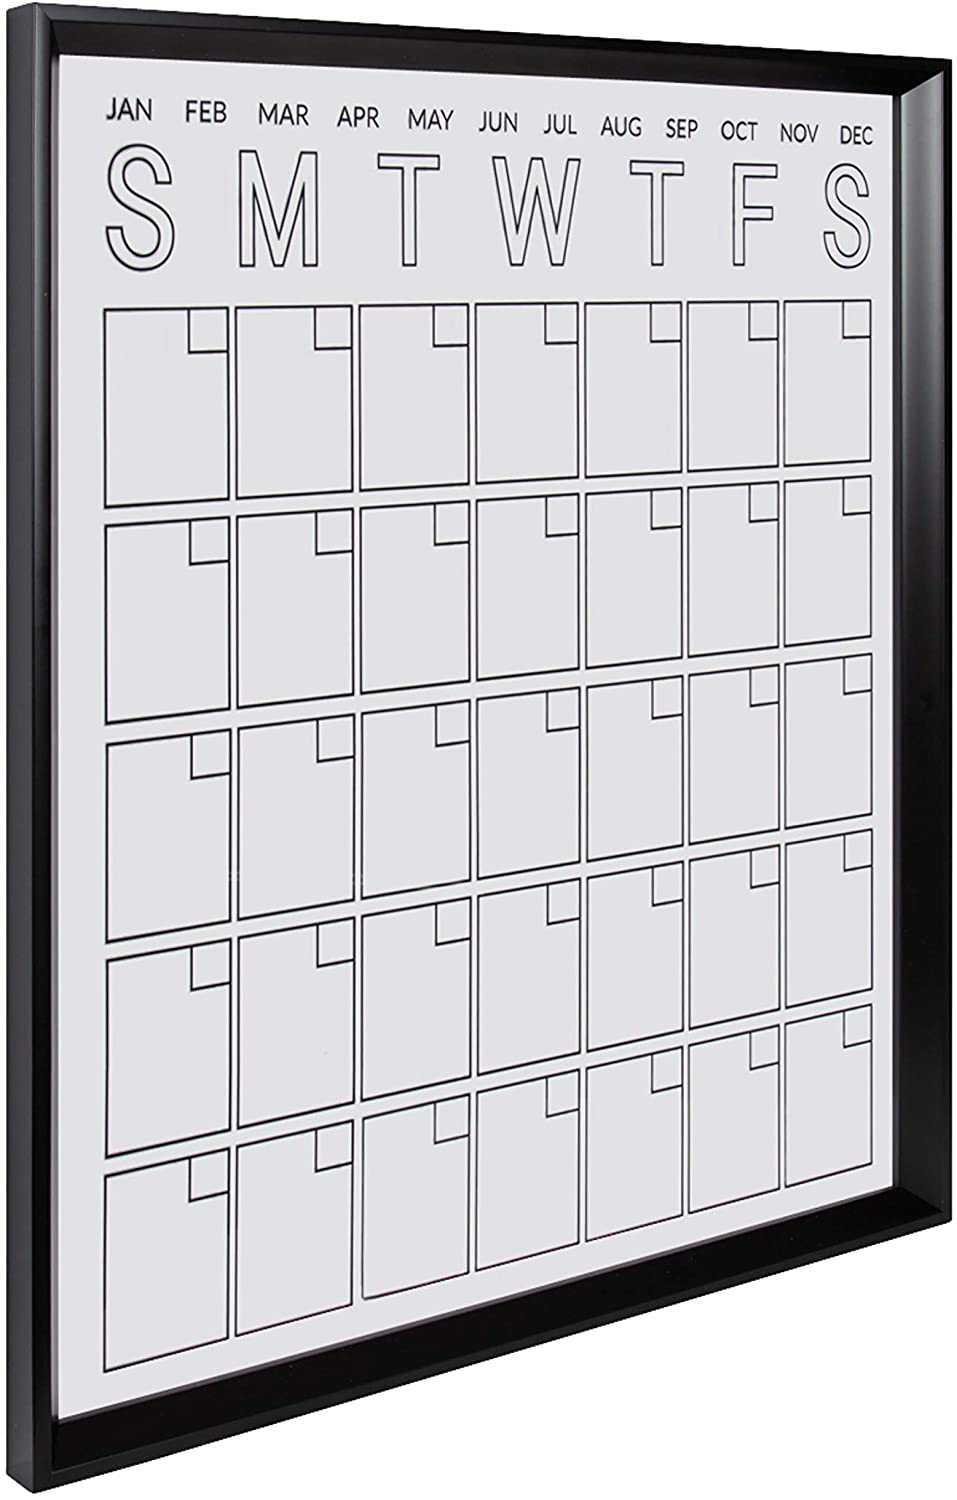 Kate and Laurel Calter Modern Acrylic Dry Erase Wall Calendar, 25.5 x 31.5, Black, Chic Transparent Whiteboard Calendar for Wall